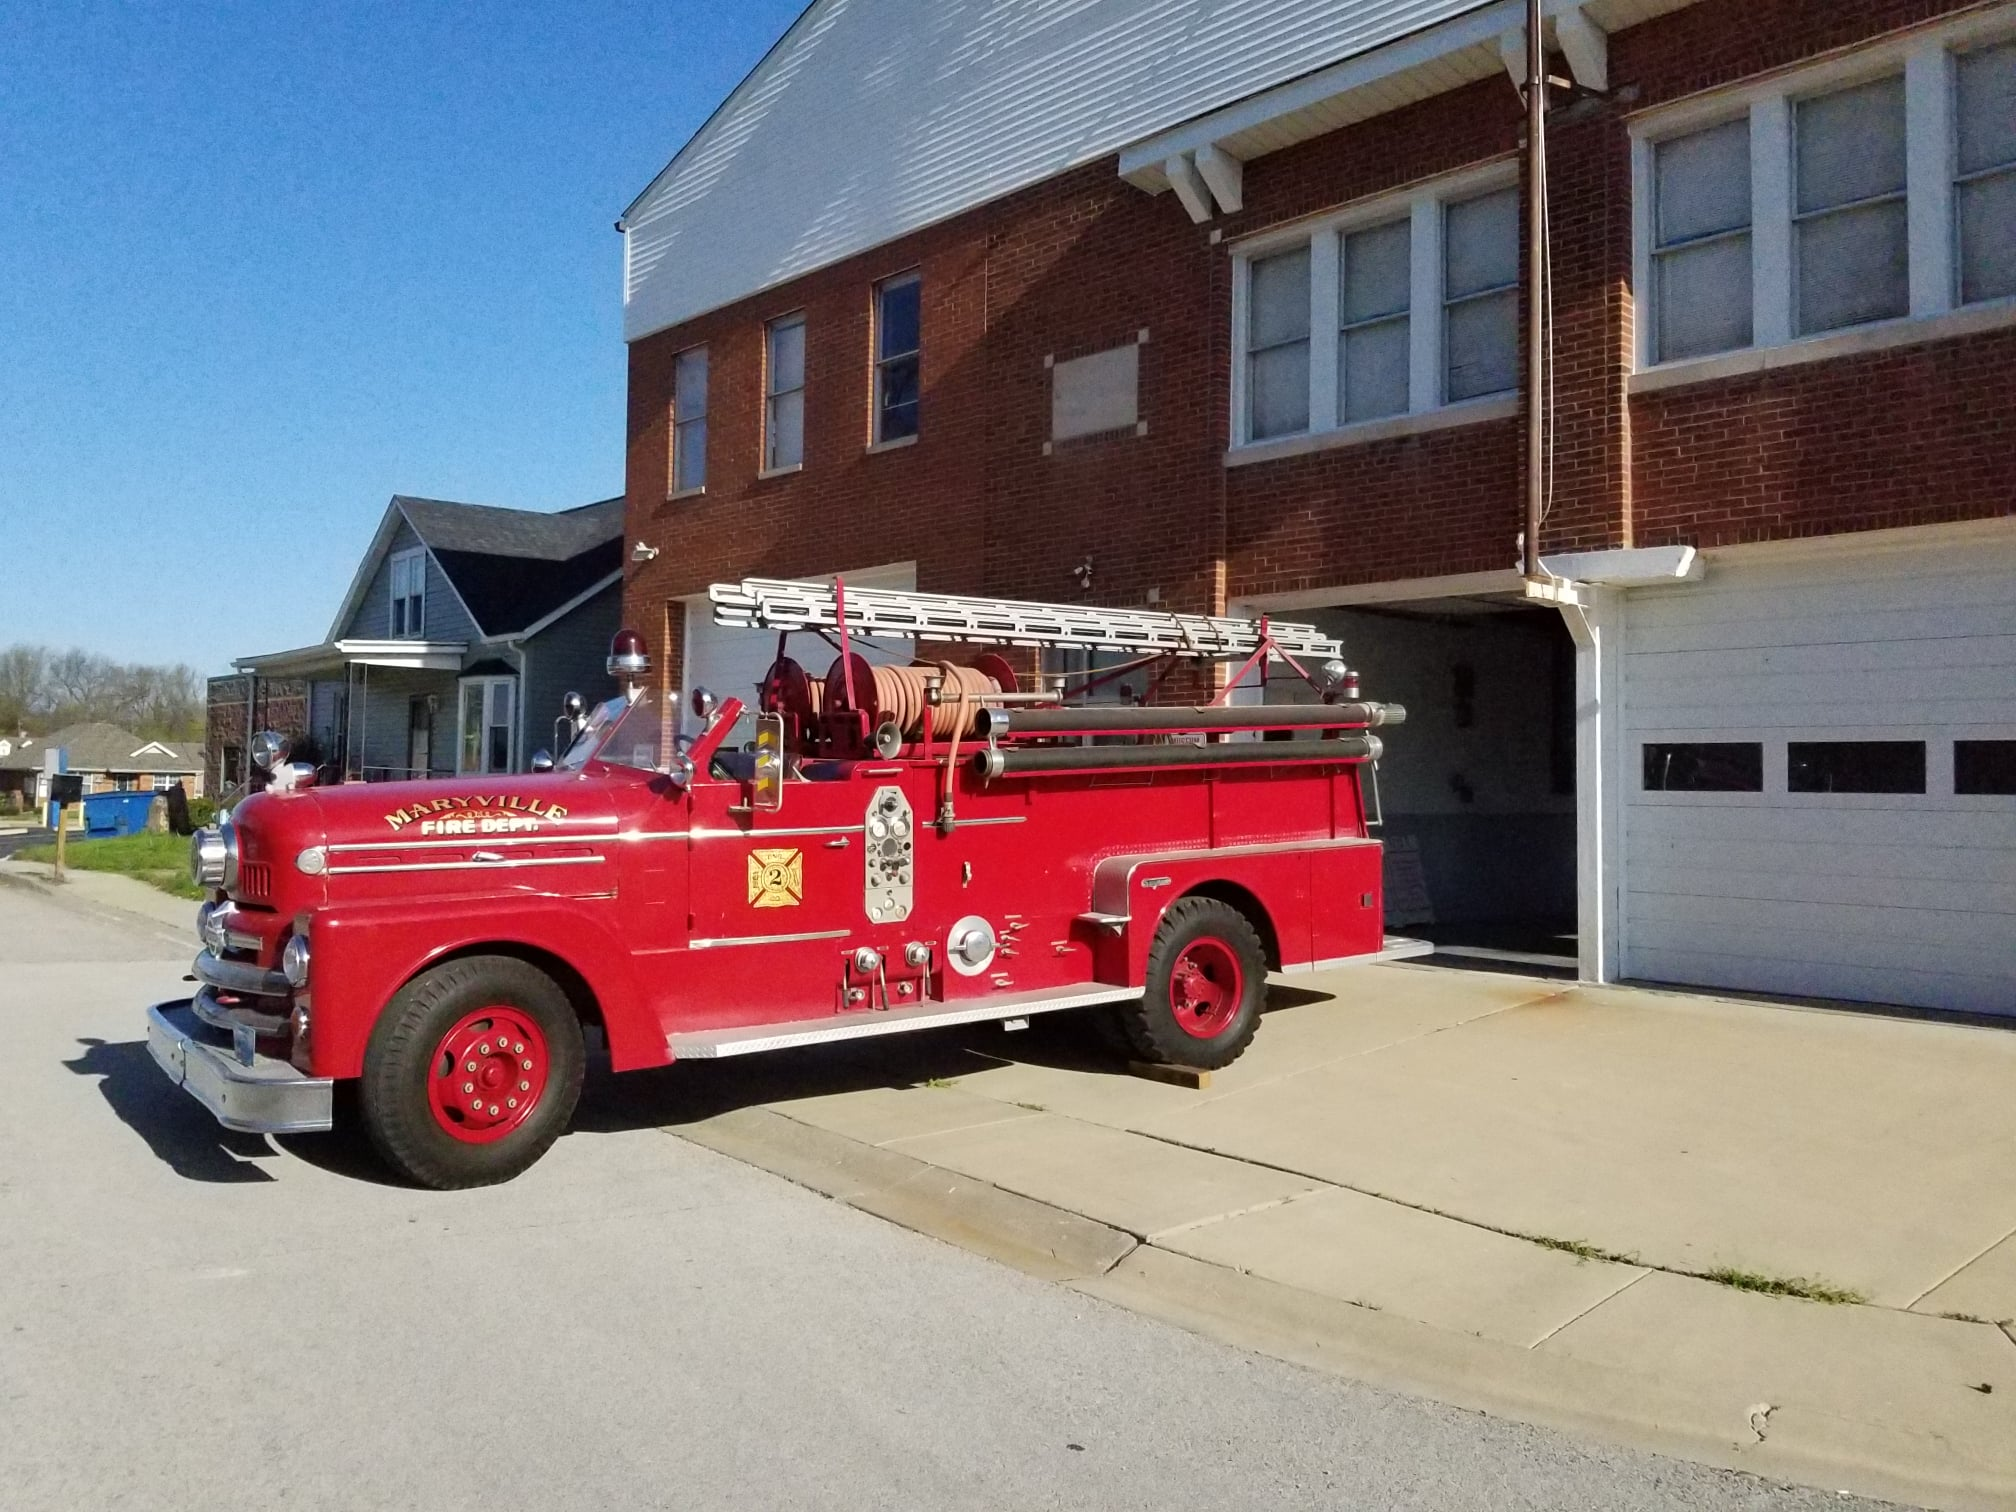 Picture of Maryville Museum with old firetruck.